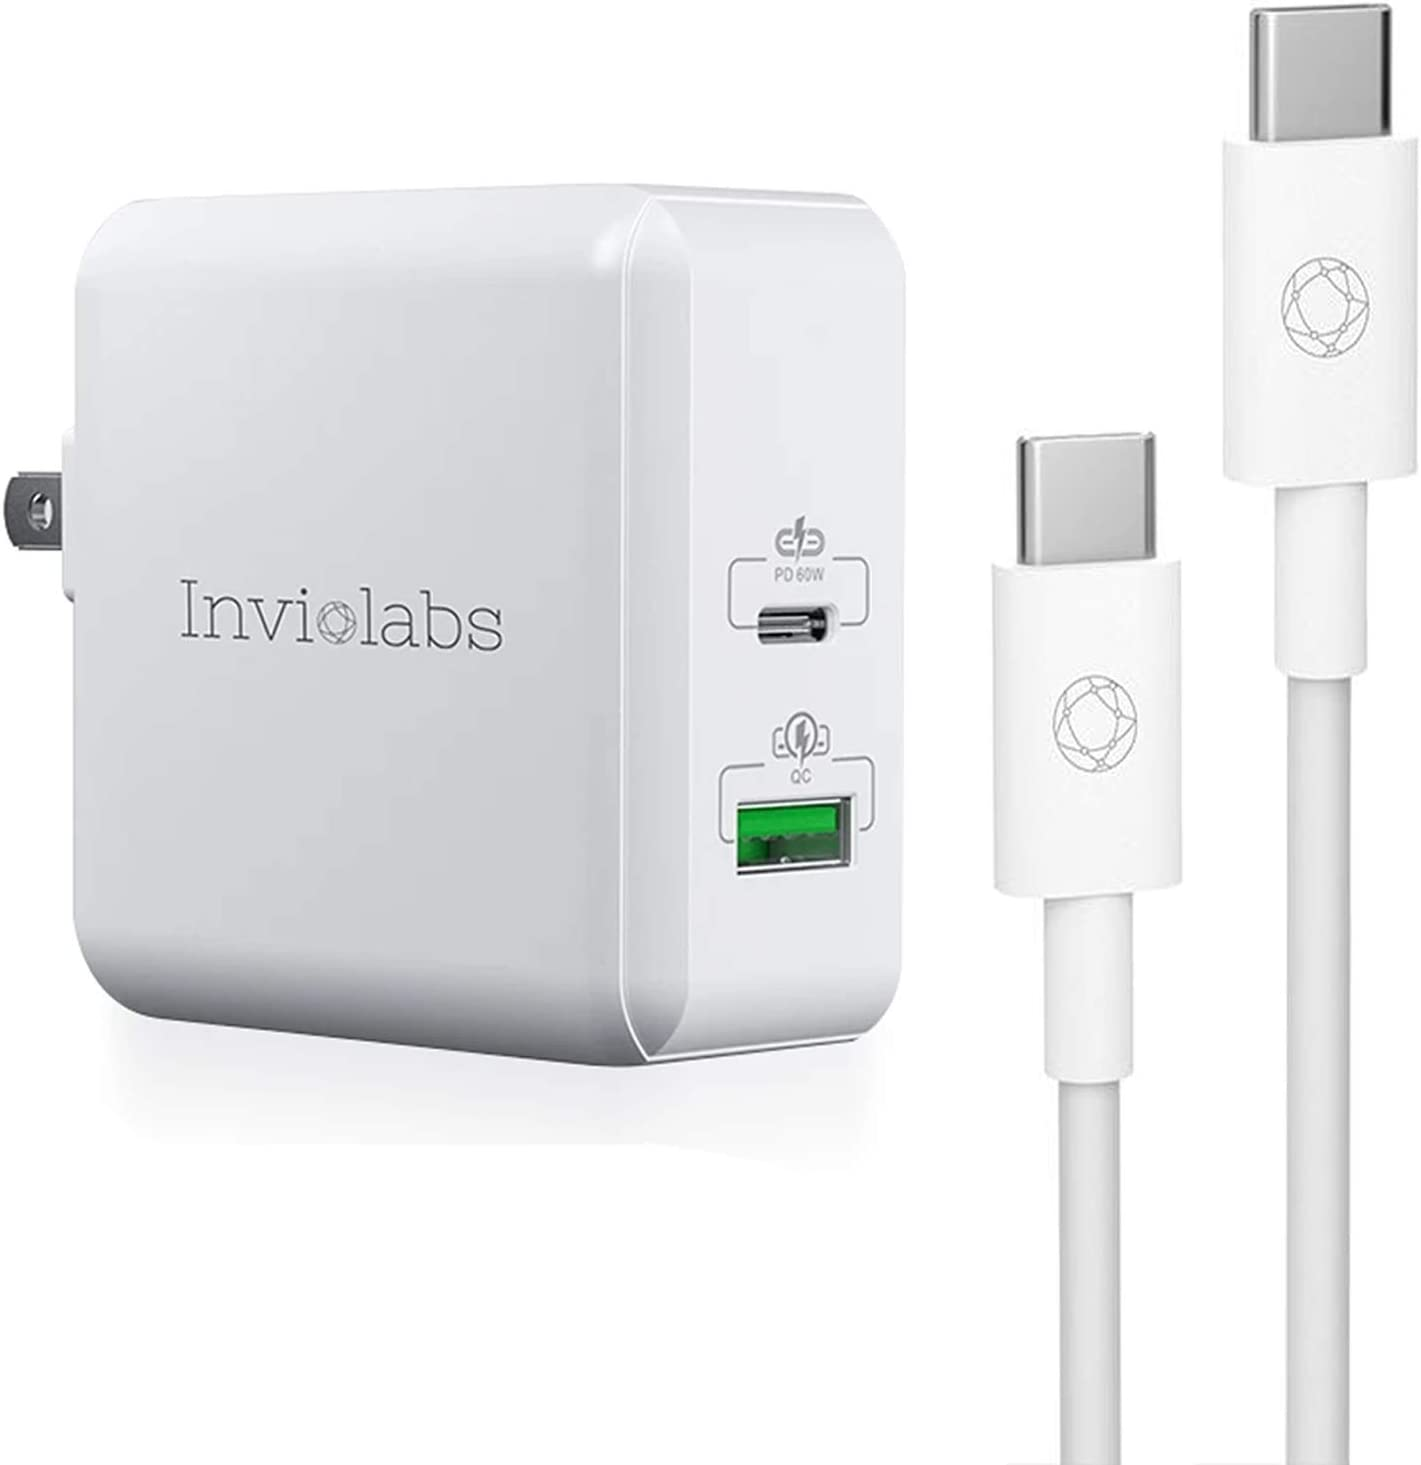 Inviolabs USB C Charger, 60W Fast chager 3.0 Wall Charger Adapter with 6ft USB-C to USB-C Cable, Dual Ports Portable USB Plug Cord Compatible with Universal Mobile Phone MacBook Laptop